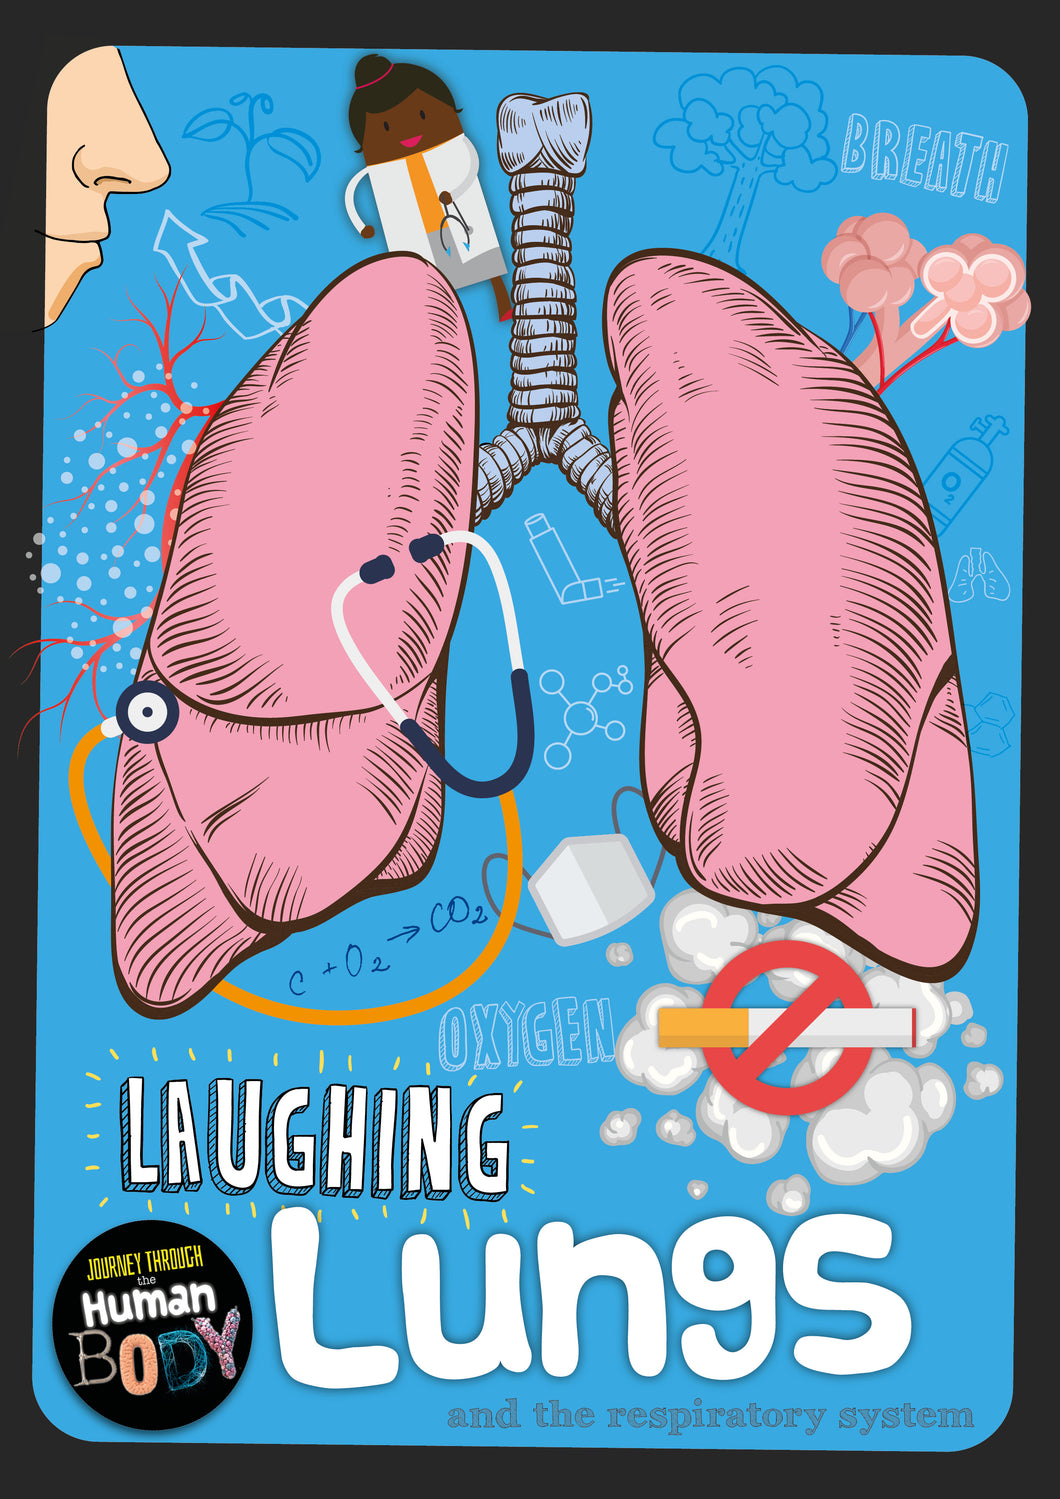 Journey Through the Human Body: Laughing Lungs e-Book